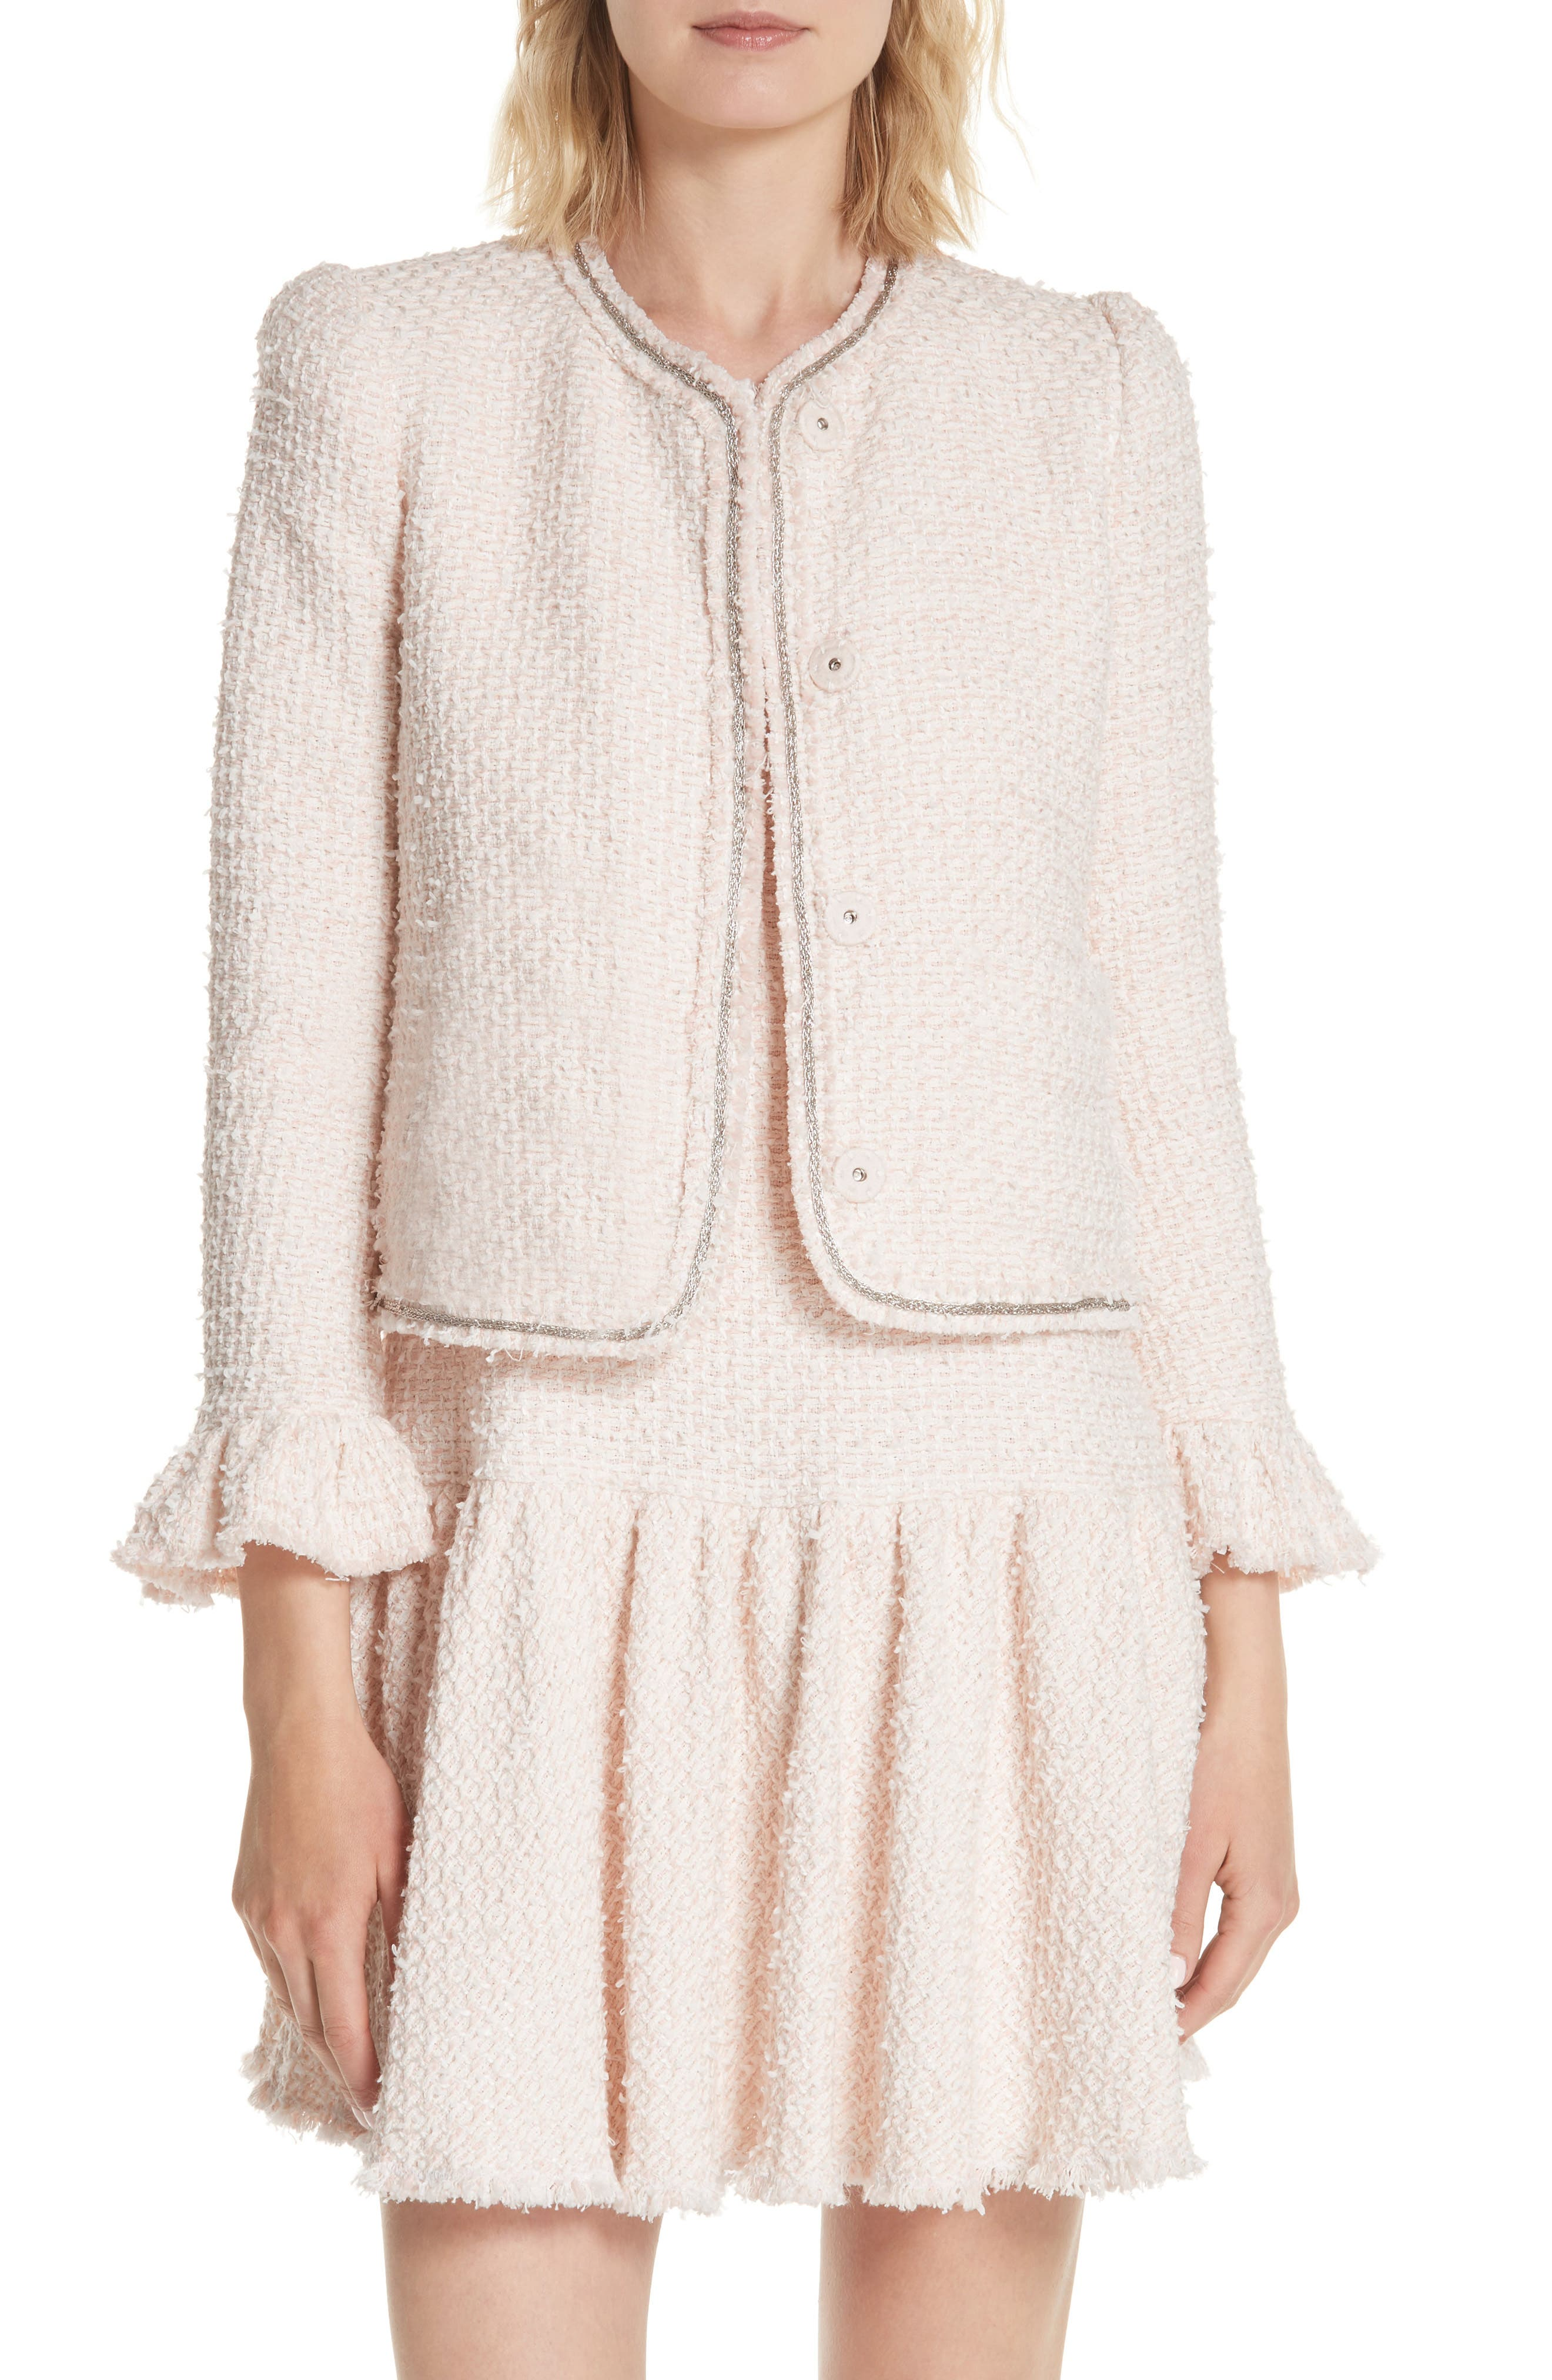 Ruffle Sleeve Tweed Jacket,                         Main,                         color, Powder Pink Combo